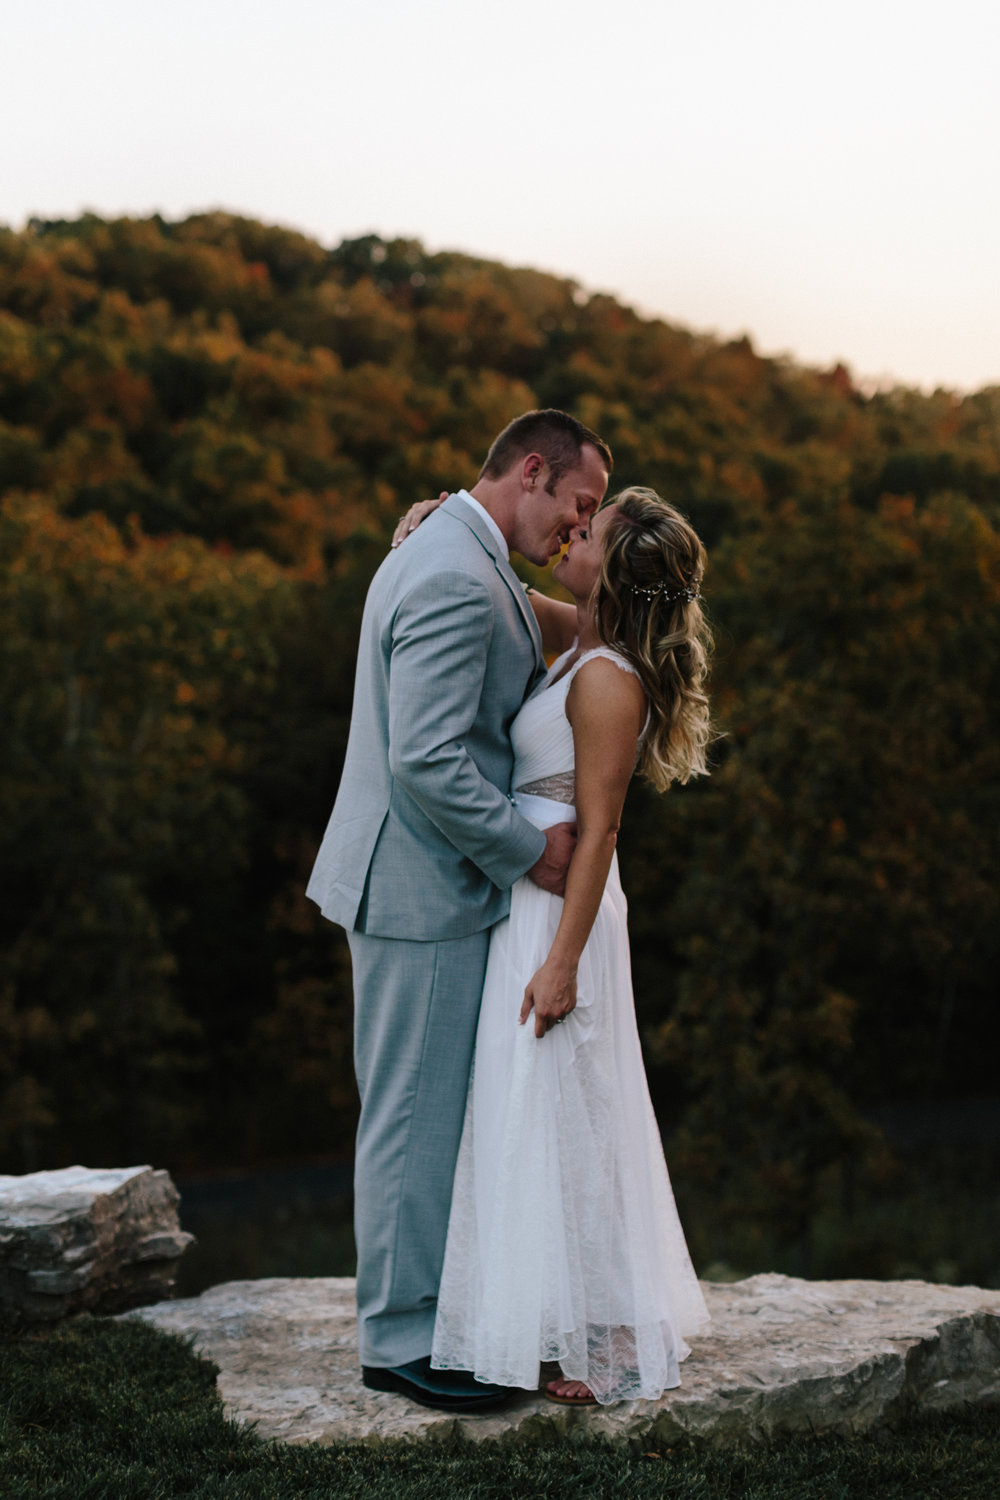 alyssa barletter photography big cedar lodge integrity hills fall wedding branson missouri-52.jpg